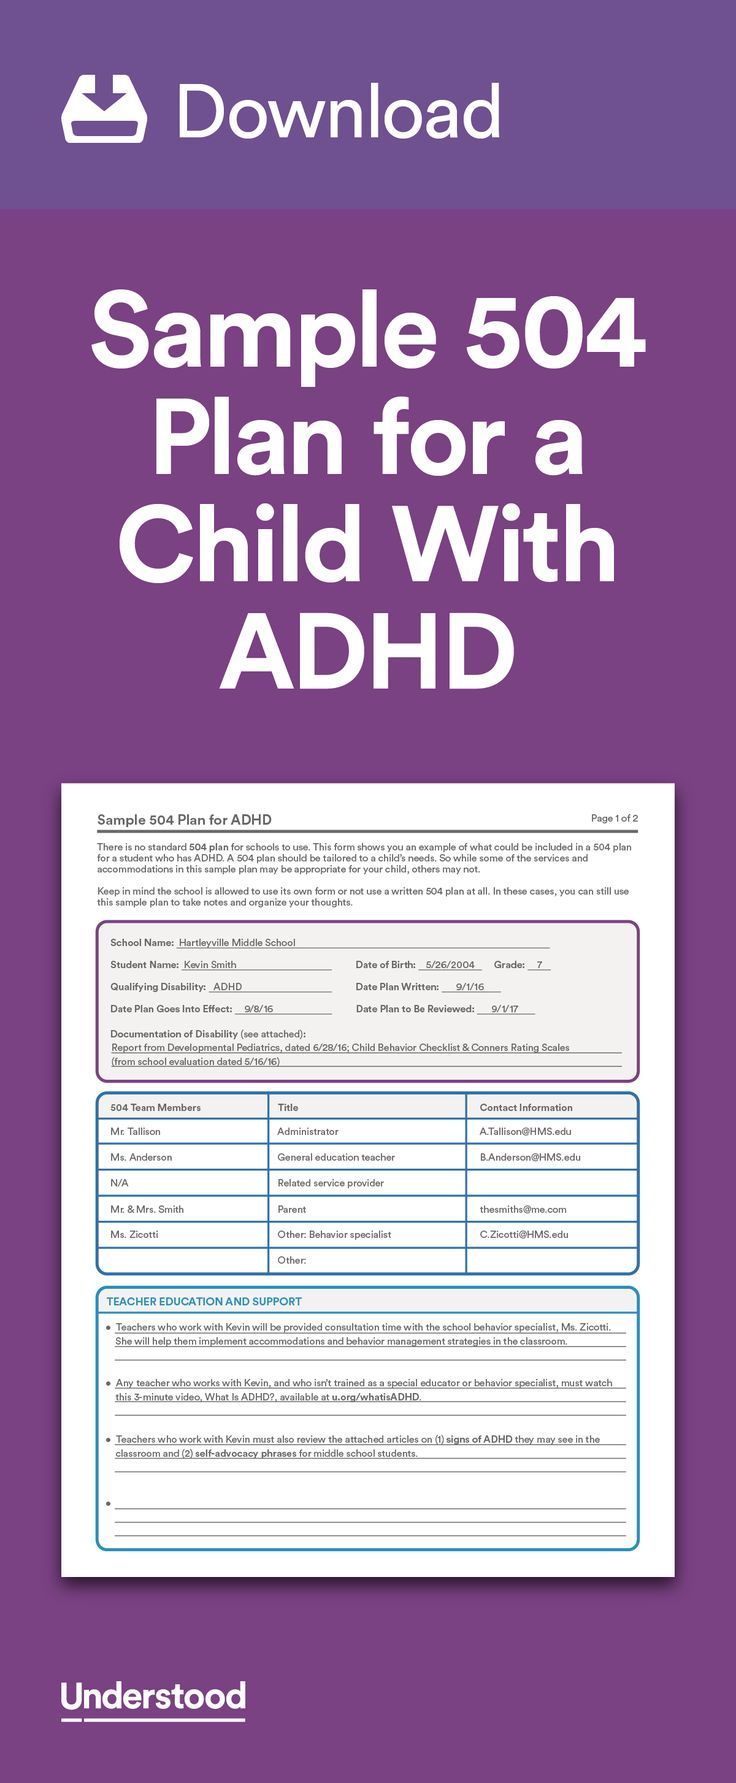 Download: Sample 504 Plan for a Child With ADHD | Behavior ...